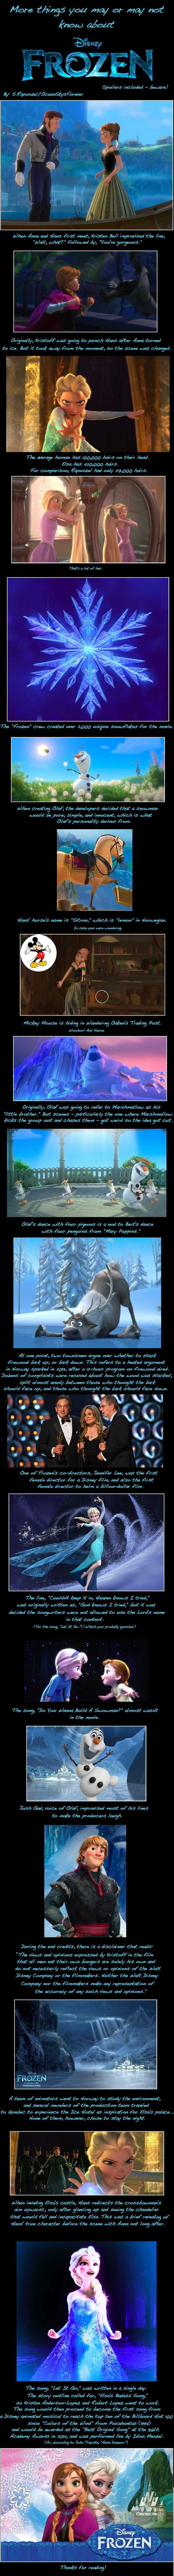 More things you may or may not know about Frozen - Imgur